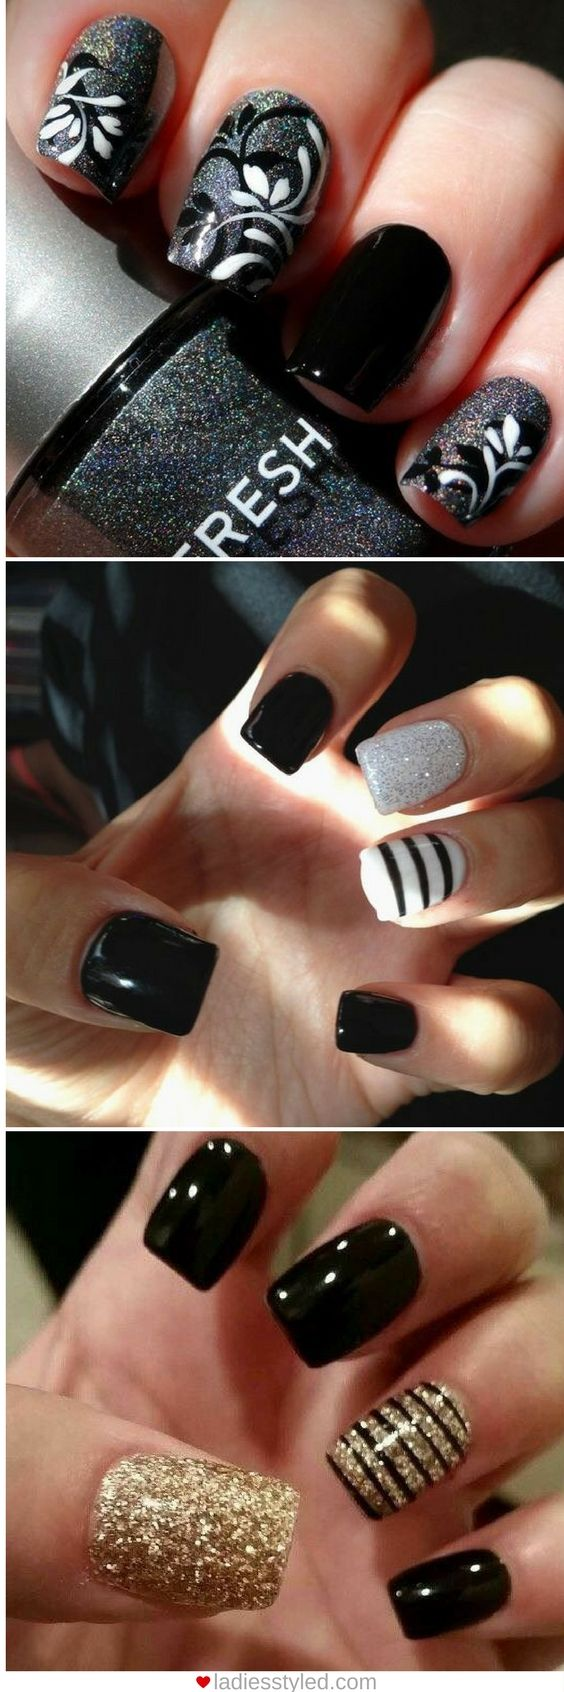 best 25+ black nails ideas on pinterest | matte nail designs